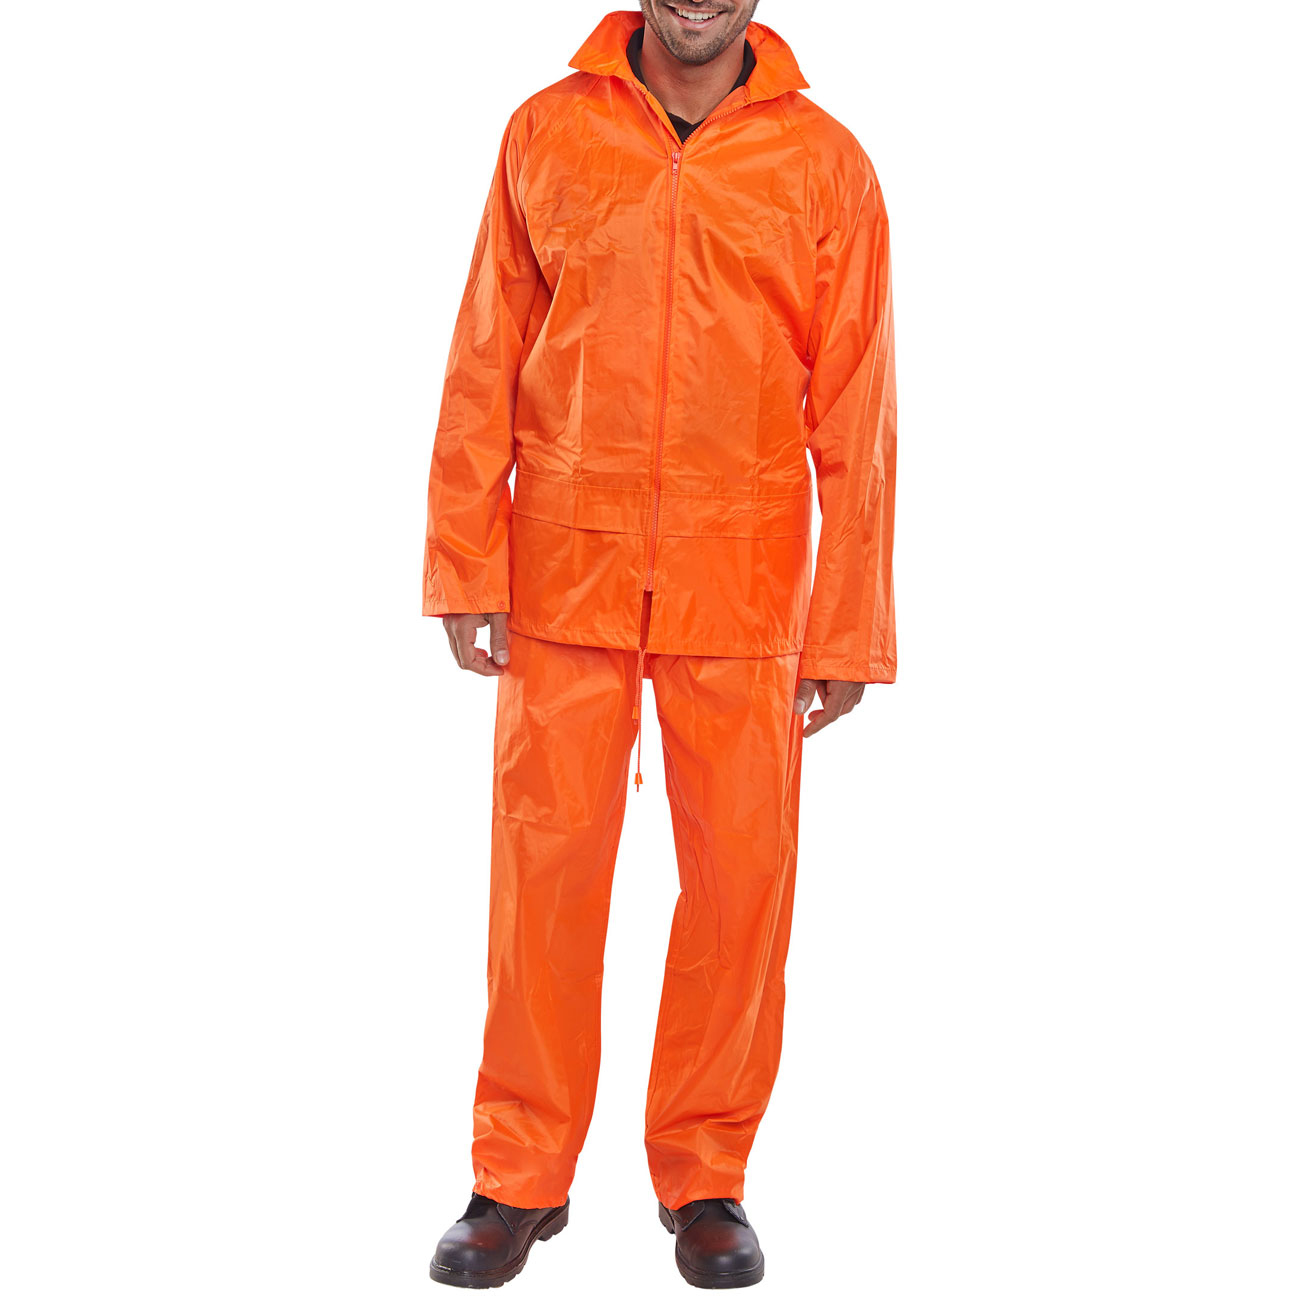 B-Dri Weatherproof Suit Nylon Jacket and Trouser S Orange Ref NBDSORS Up to 3 Day Leadtime